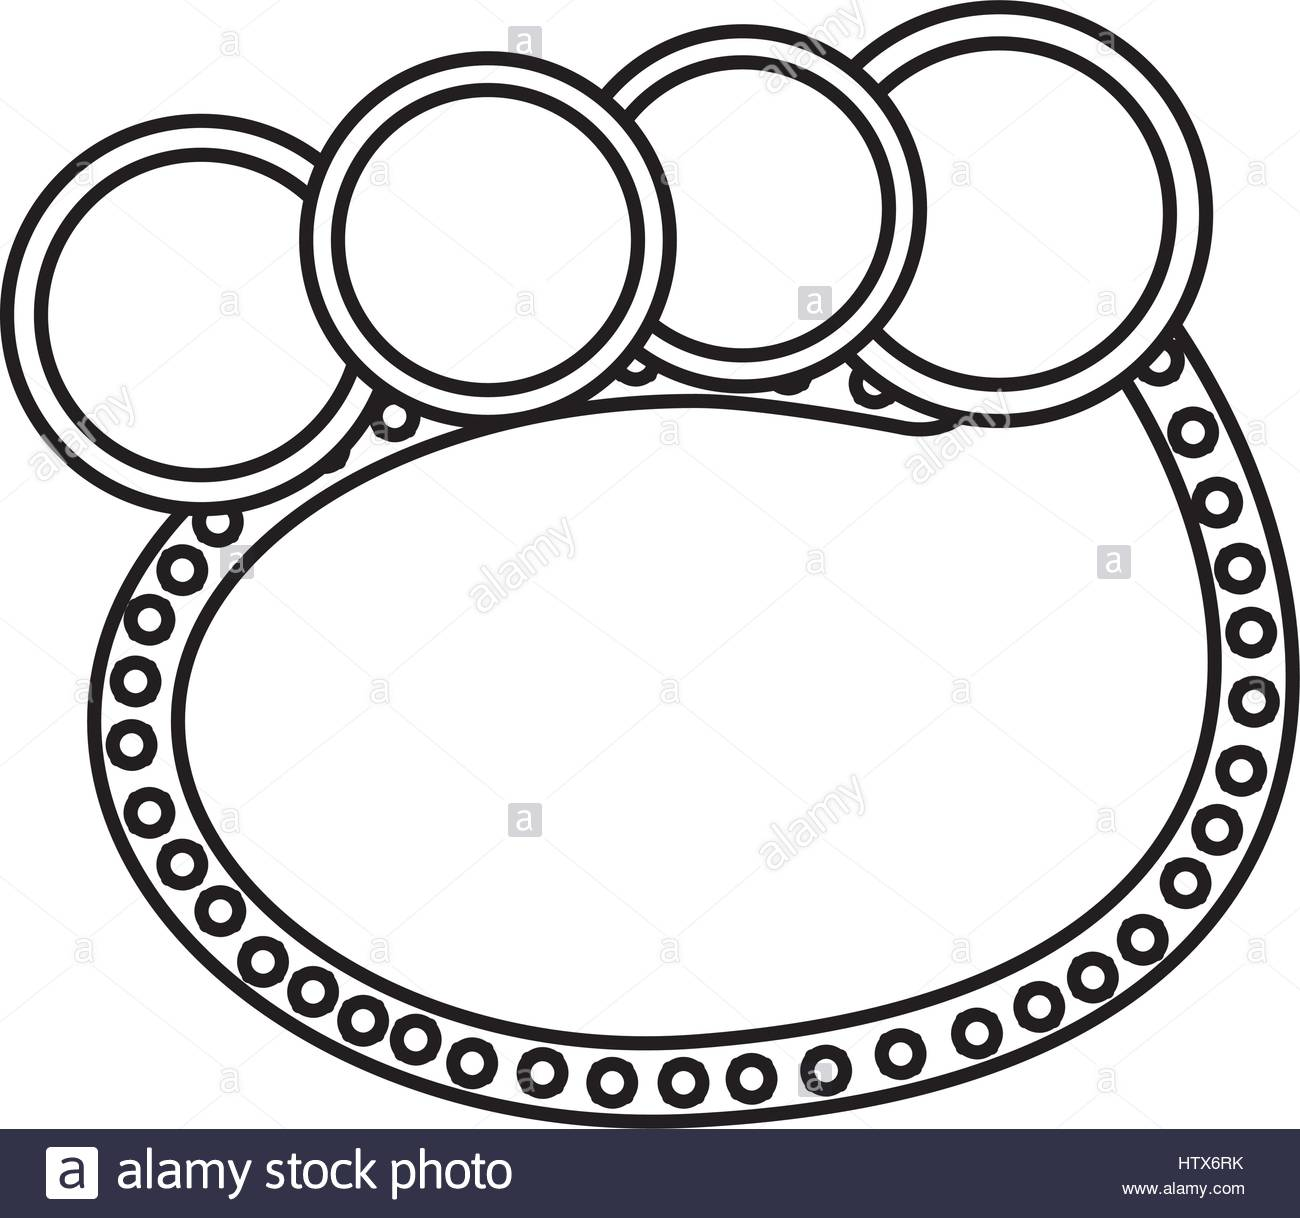 1300x1218 Silhouette Oval Bubble With Circles Stock Vector Art